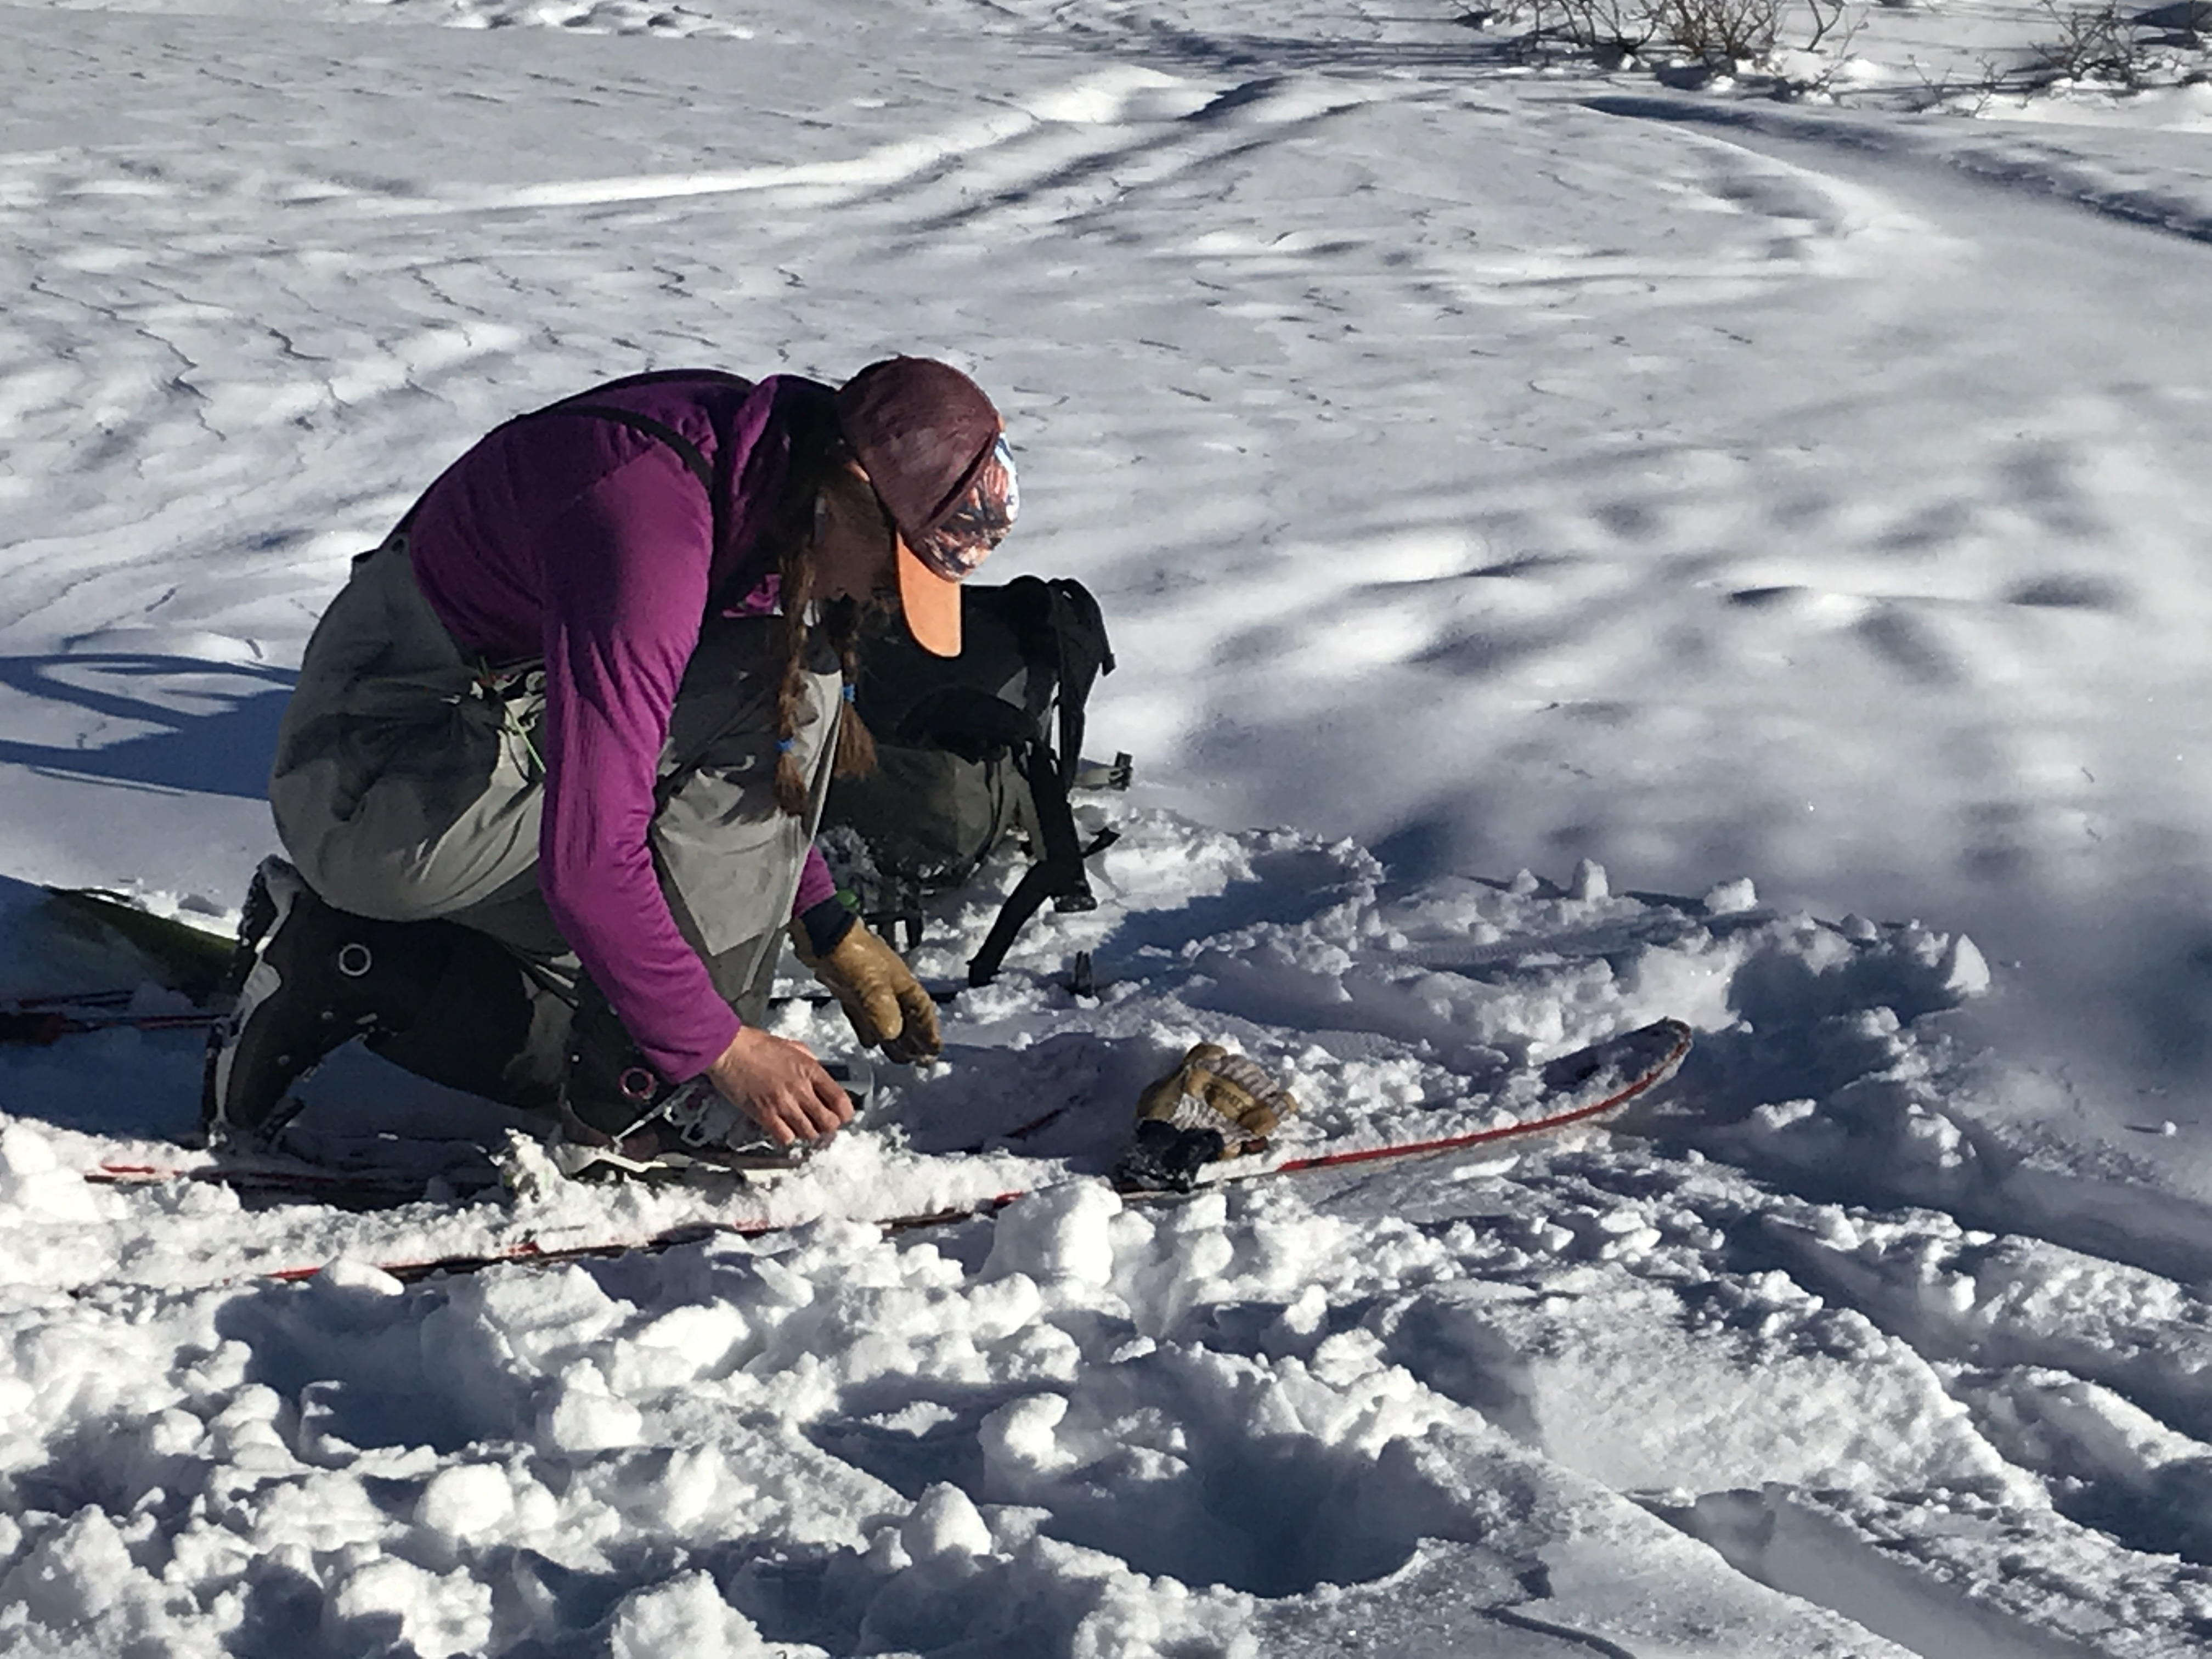 Chicks avalanche rescue course participant practices a fine search with her avalanche transceiver